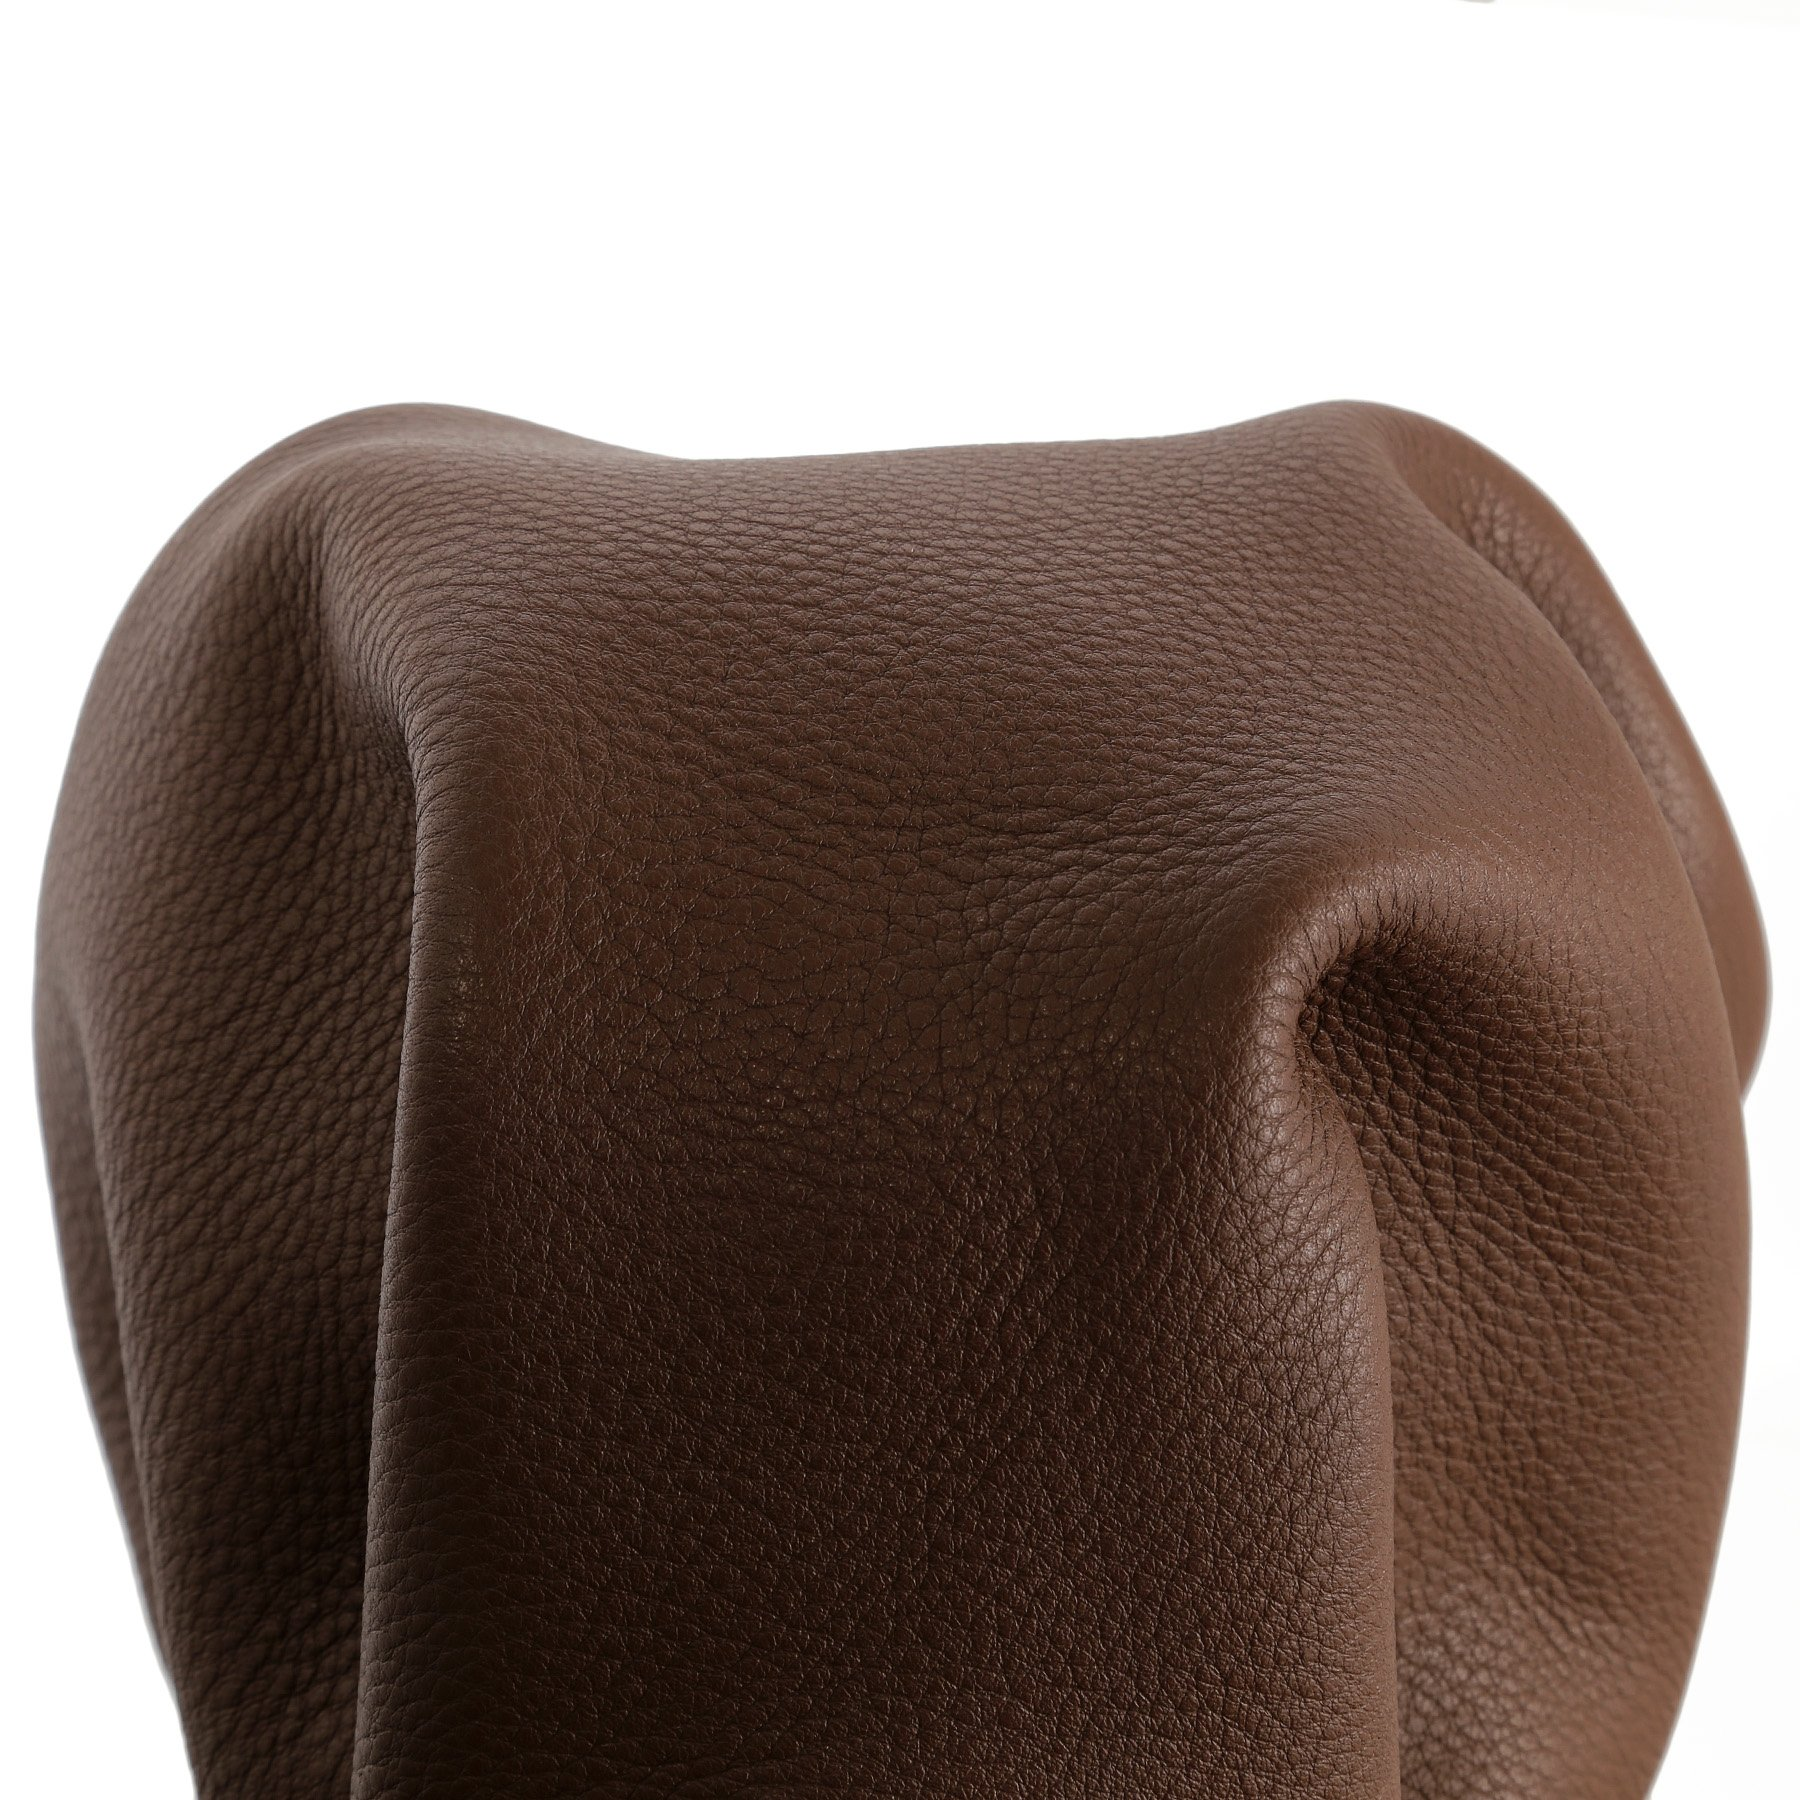 Cow Leather Hide Skin 22-24 Square Feet Mid Brown Cognac Tan Natural Soft Aniline Naked Regency 3.5-4.0 oz 1.4 mm Genuine Cowhide Side NAT Leathers